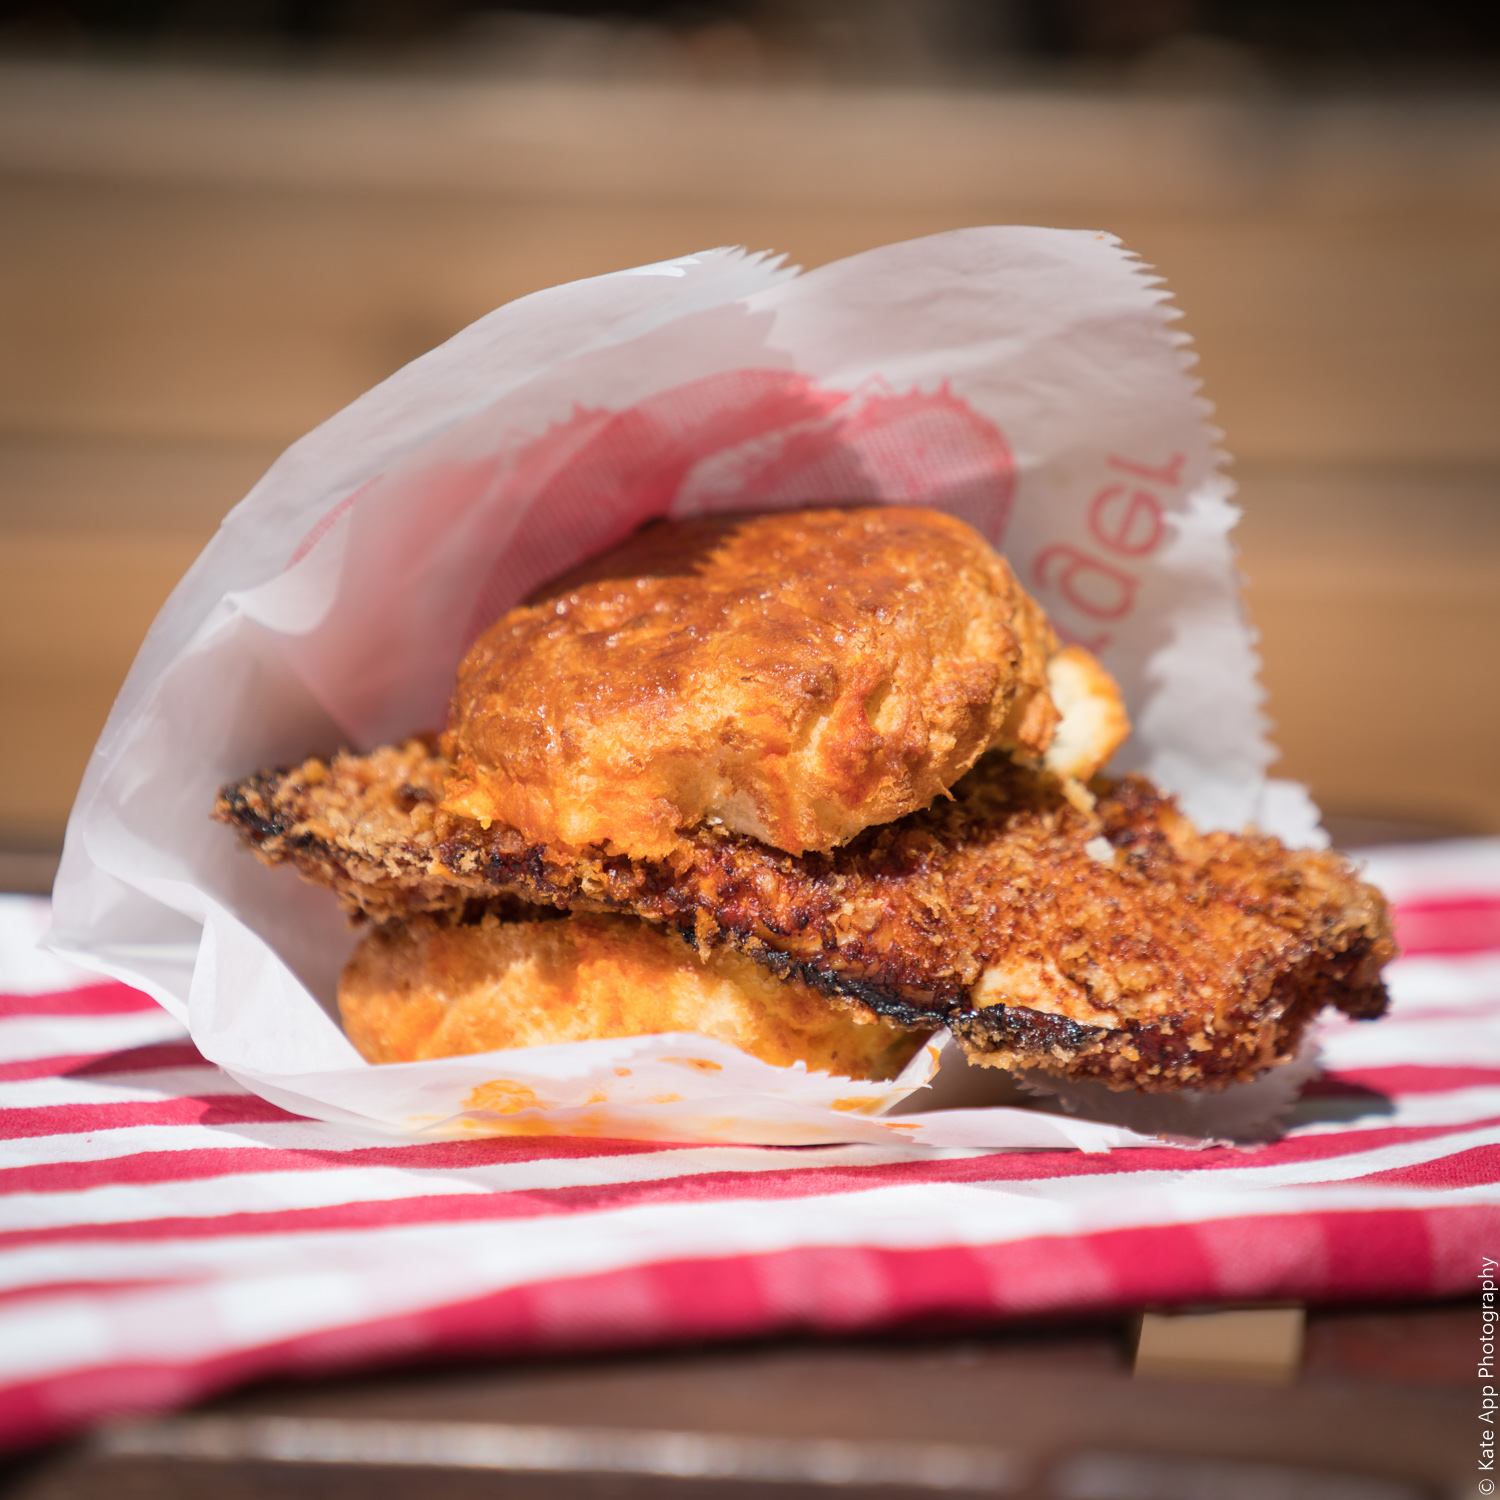 Southern Fried Chicken Burger on a Handmade Buttermilk Biscuit Bun.jpg